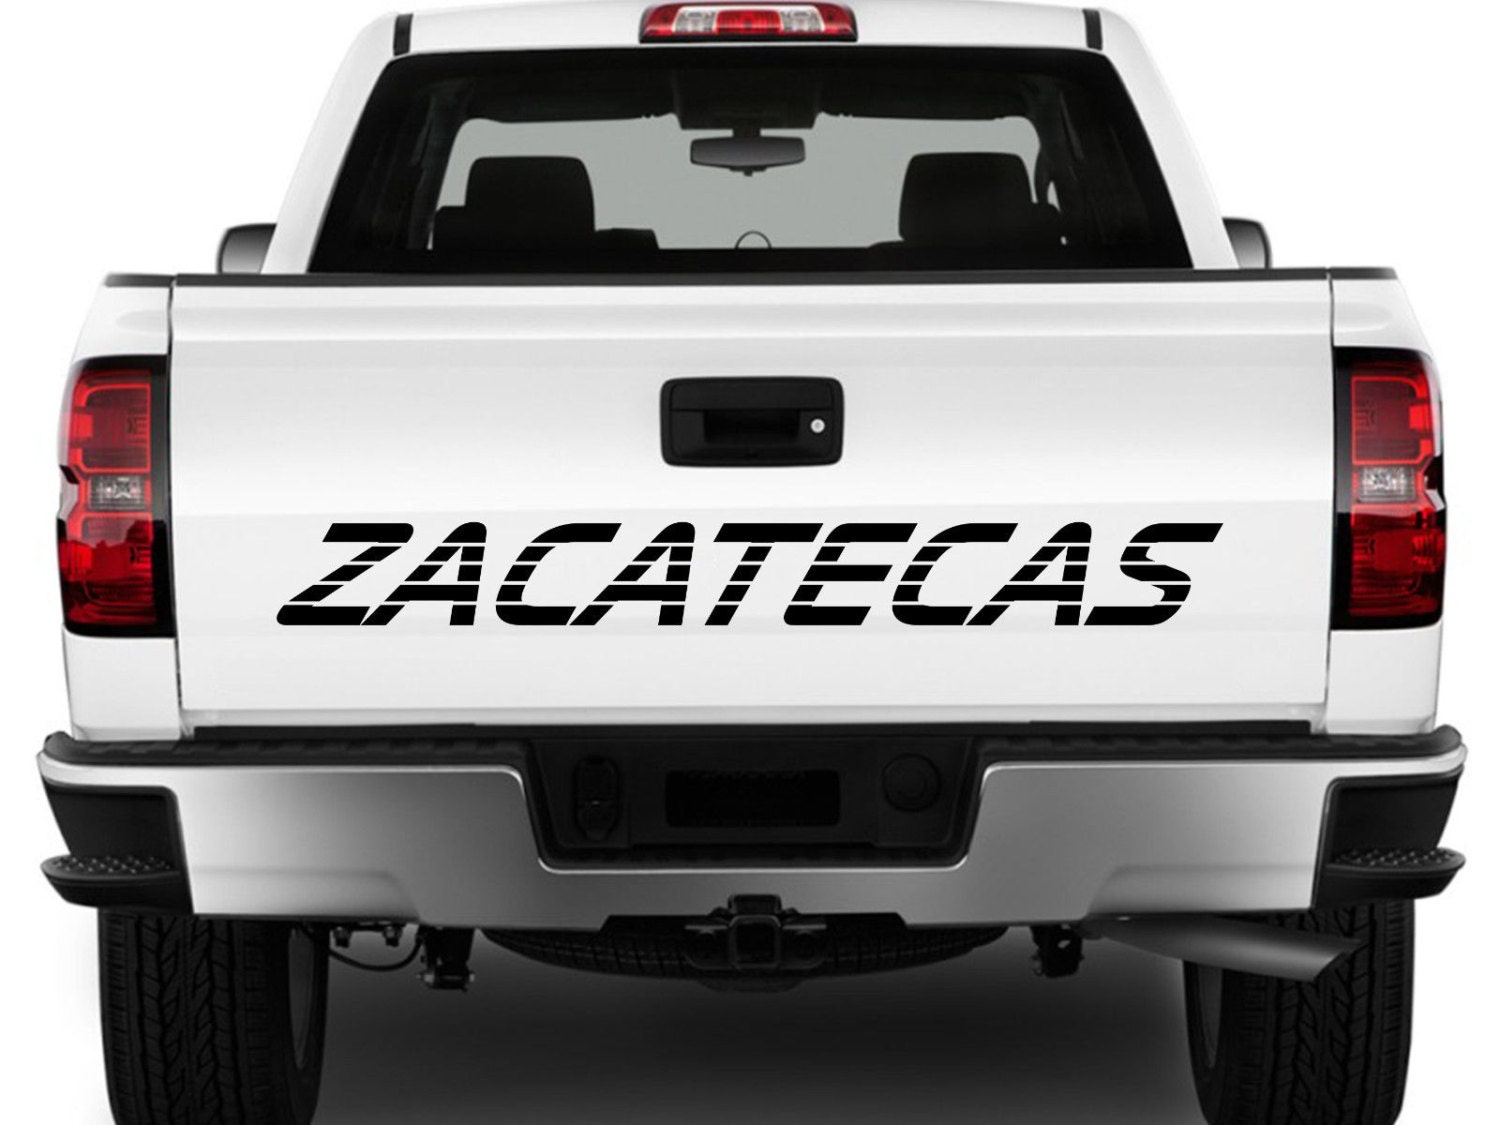 Zacatecas Mexico Truck Decal Sticker Tailgate For Chevy